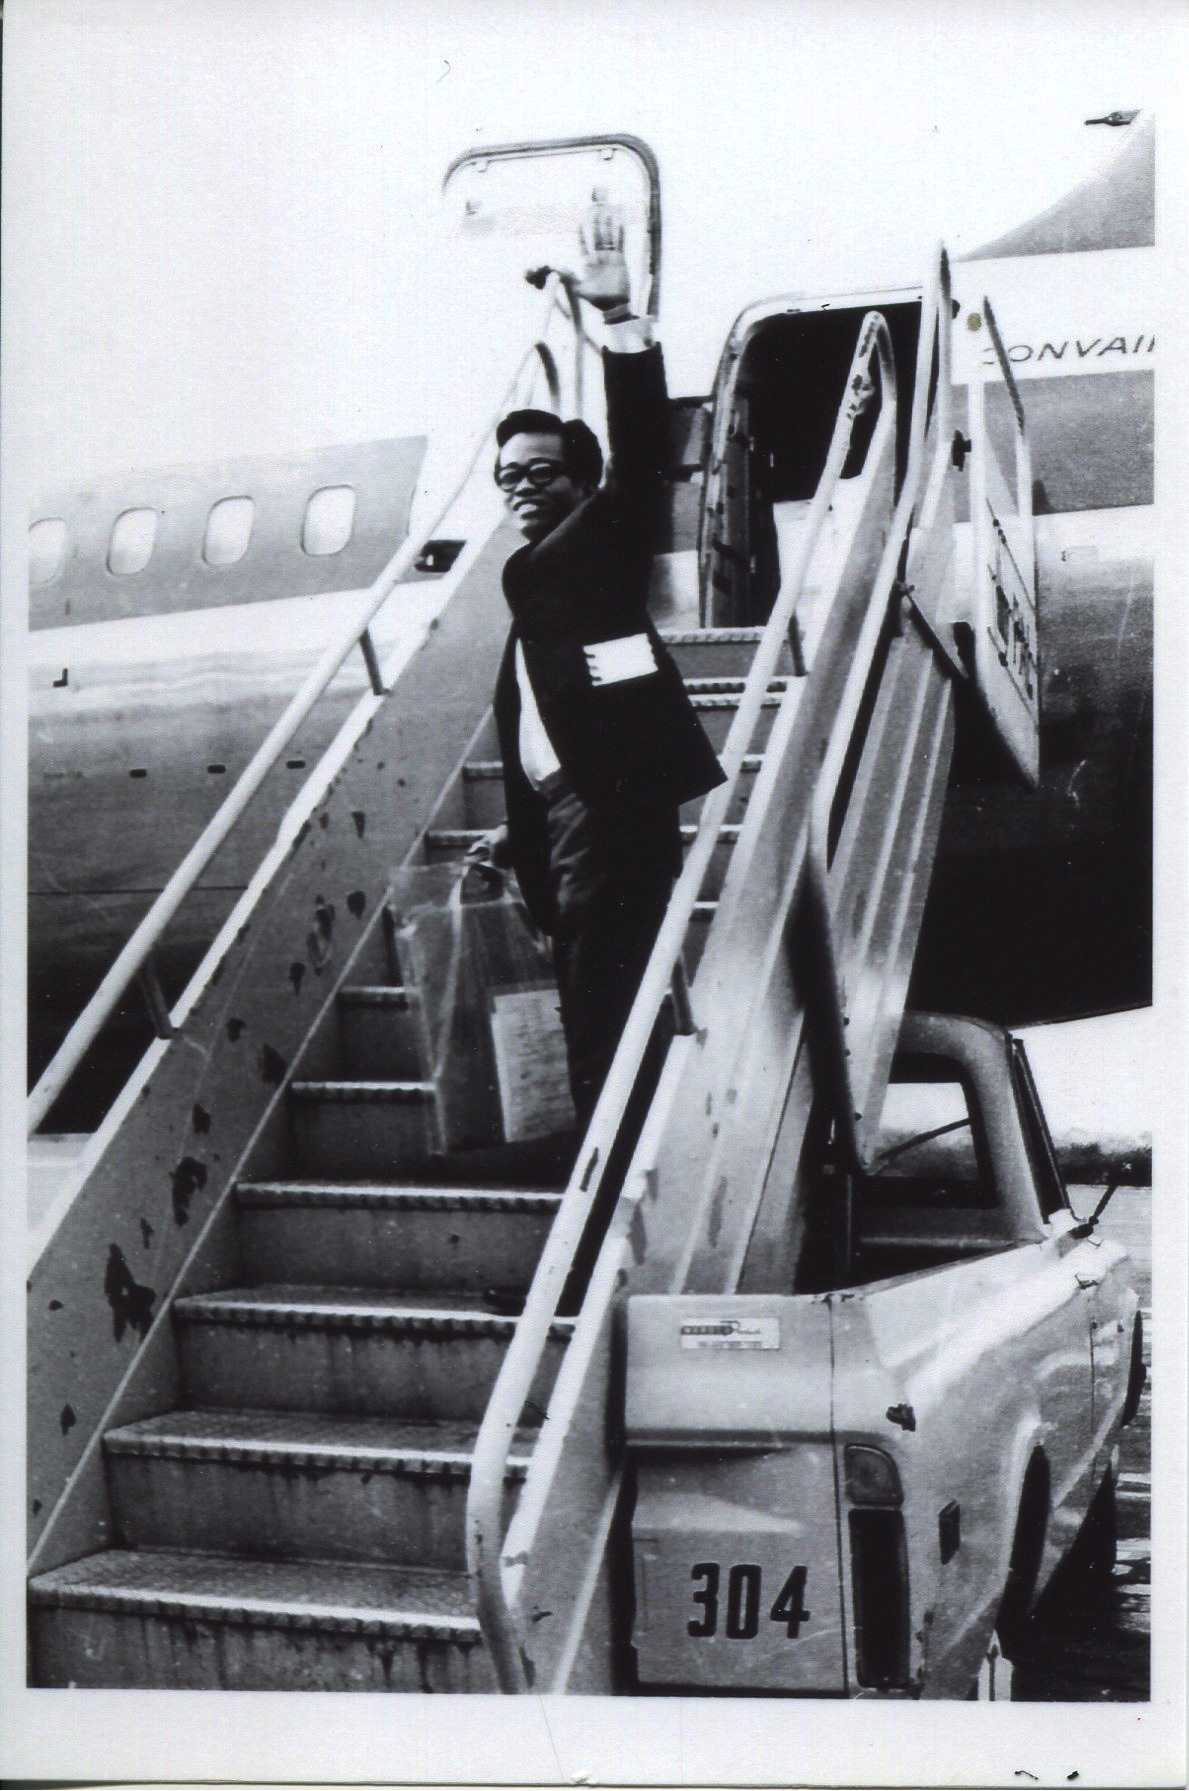 Photo of Carnate, 1971 Taken in 1971 at the airport. Photographers at the airport took the photo and sold to his wife while they were saying goodbye. It was common for photographers to take emigration photos to sell to families. Pictured is Orlando waving from the plane as he leaves Manila.   Any views, findings, conclusions, or recommendations expressed in this story do not necessarily represent those of the National Endowment for the Humanities. [Copyright] Field Museum of Natural History - CC BY-NC